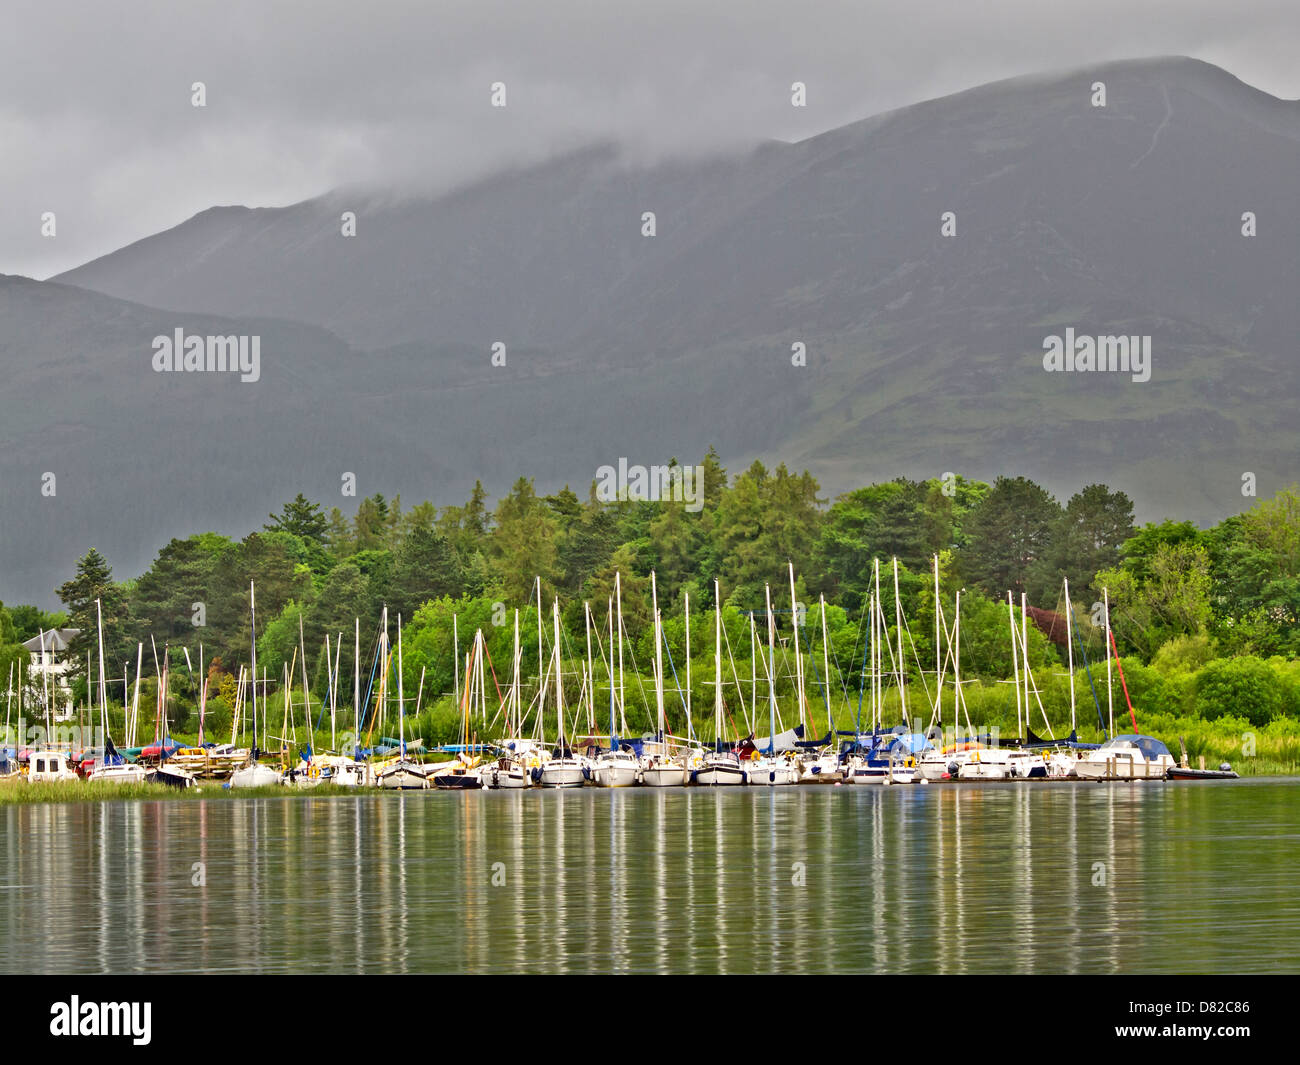 Lake and Boats with mountains on the background at Nicol End Broads, Lake District , Cumbria, UK - Stock Image